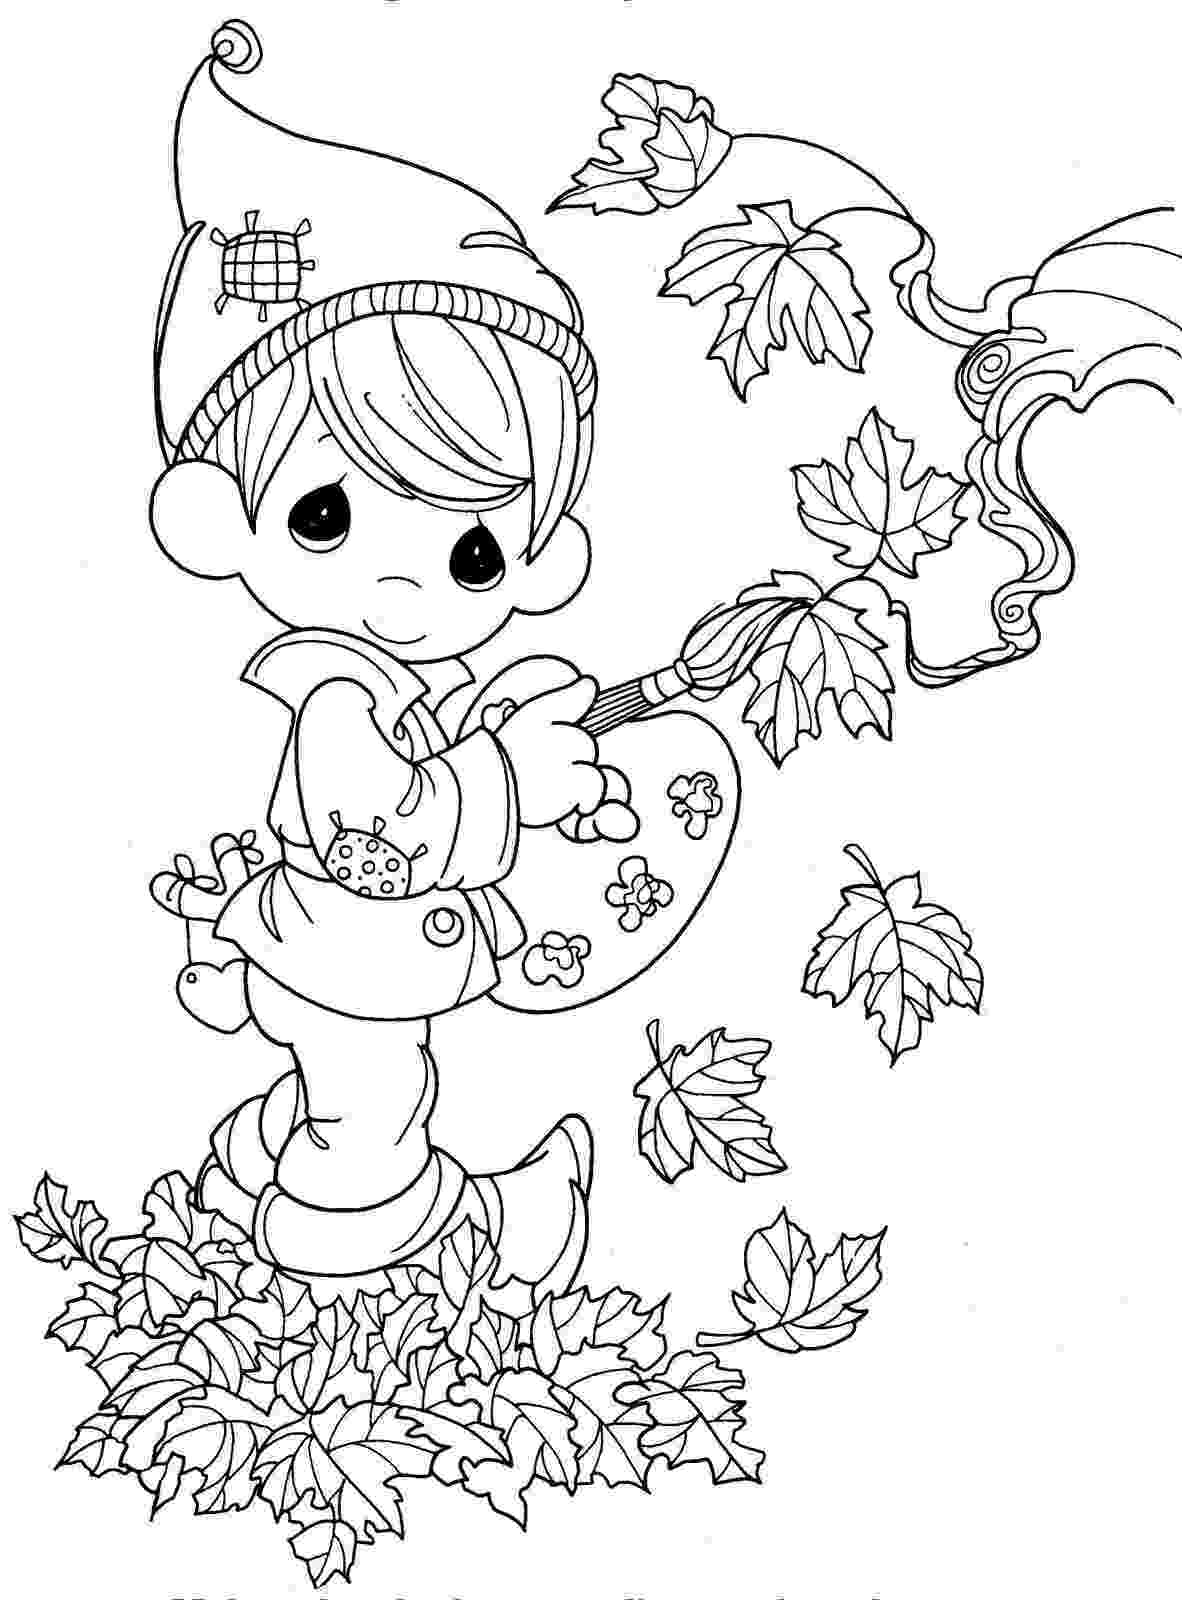 free fall coloring pages 4 free printable fall coloring pages pages fall coloring free